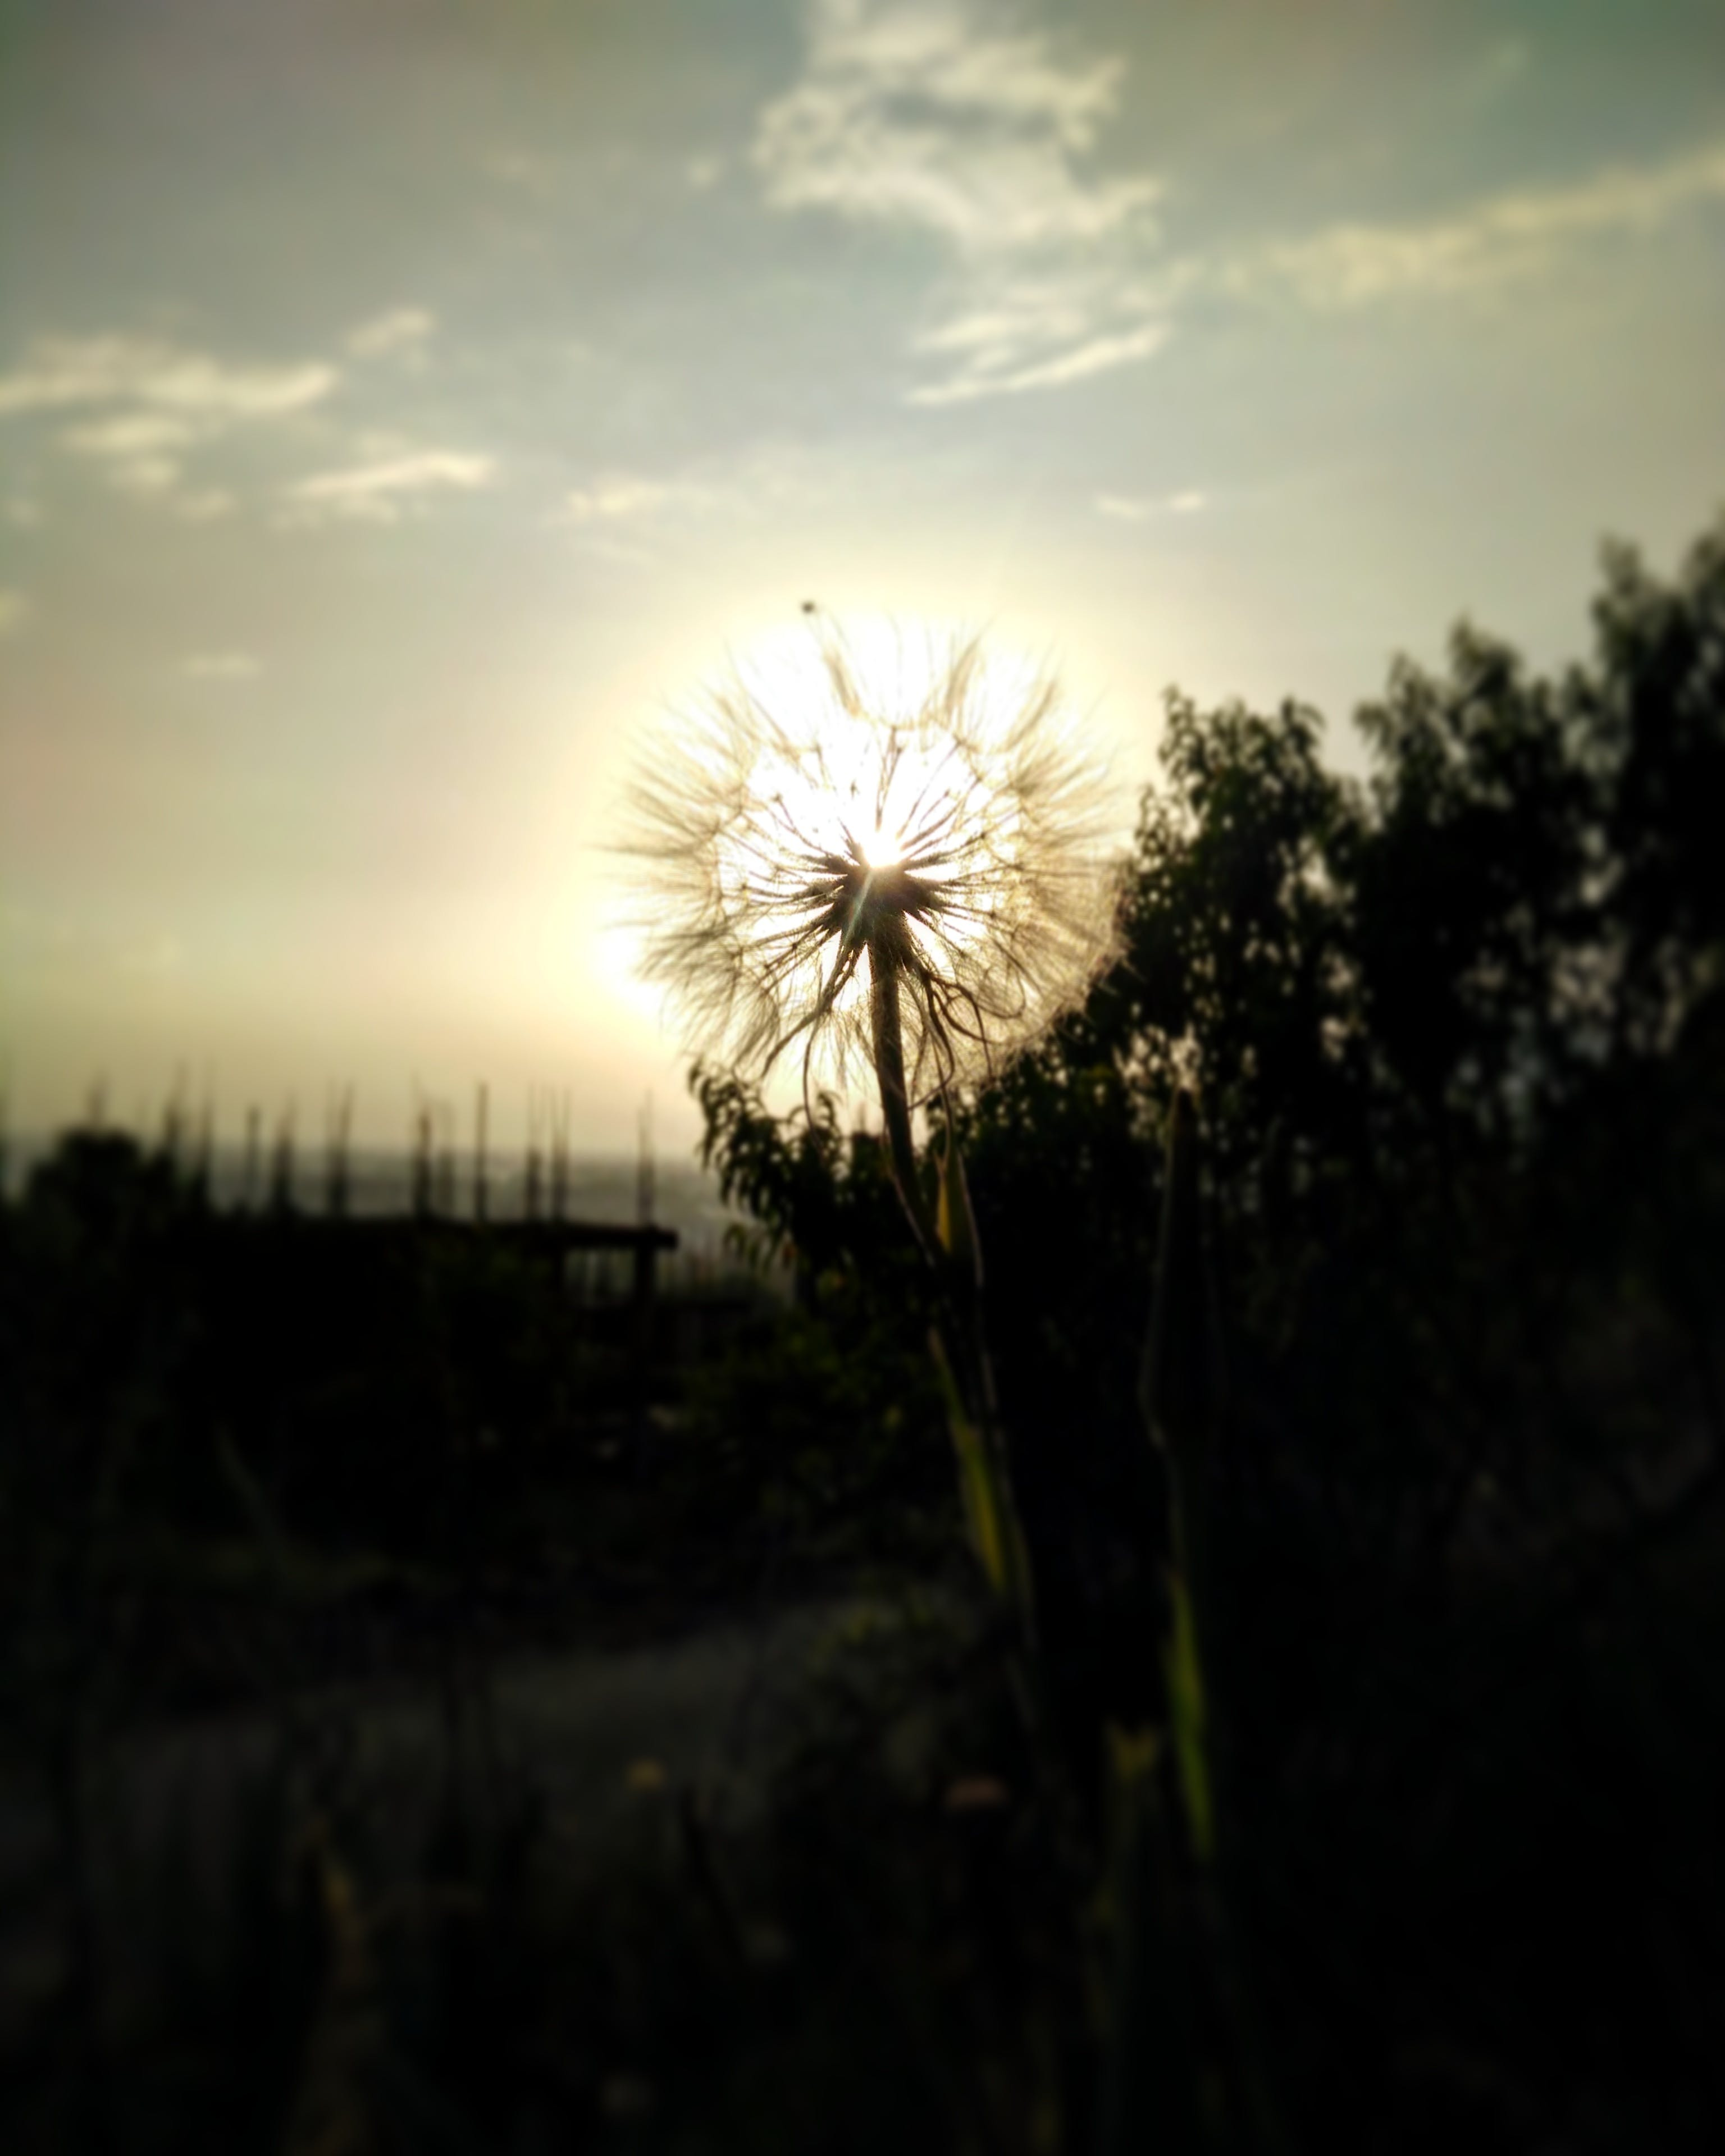 Silhouette of Dandelion Flower in Bloom